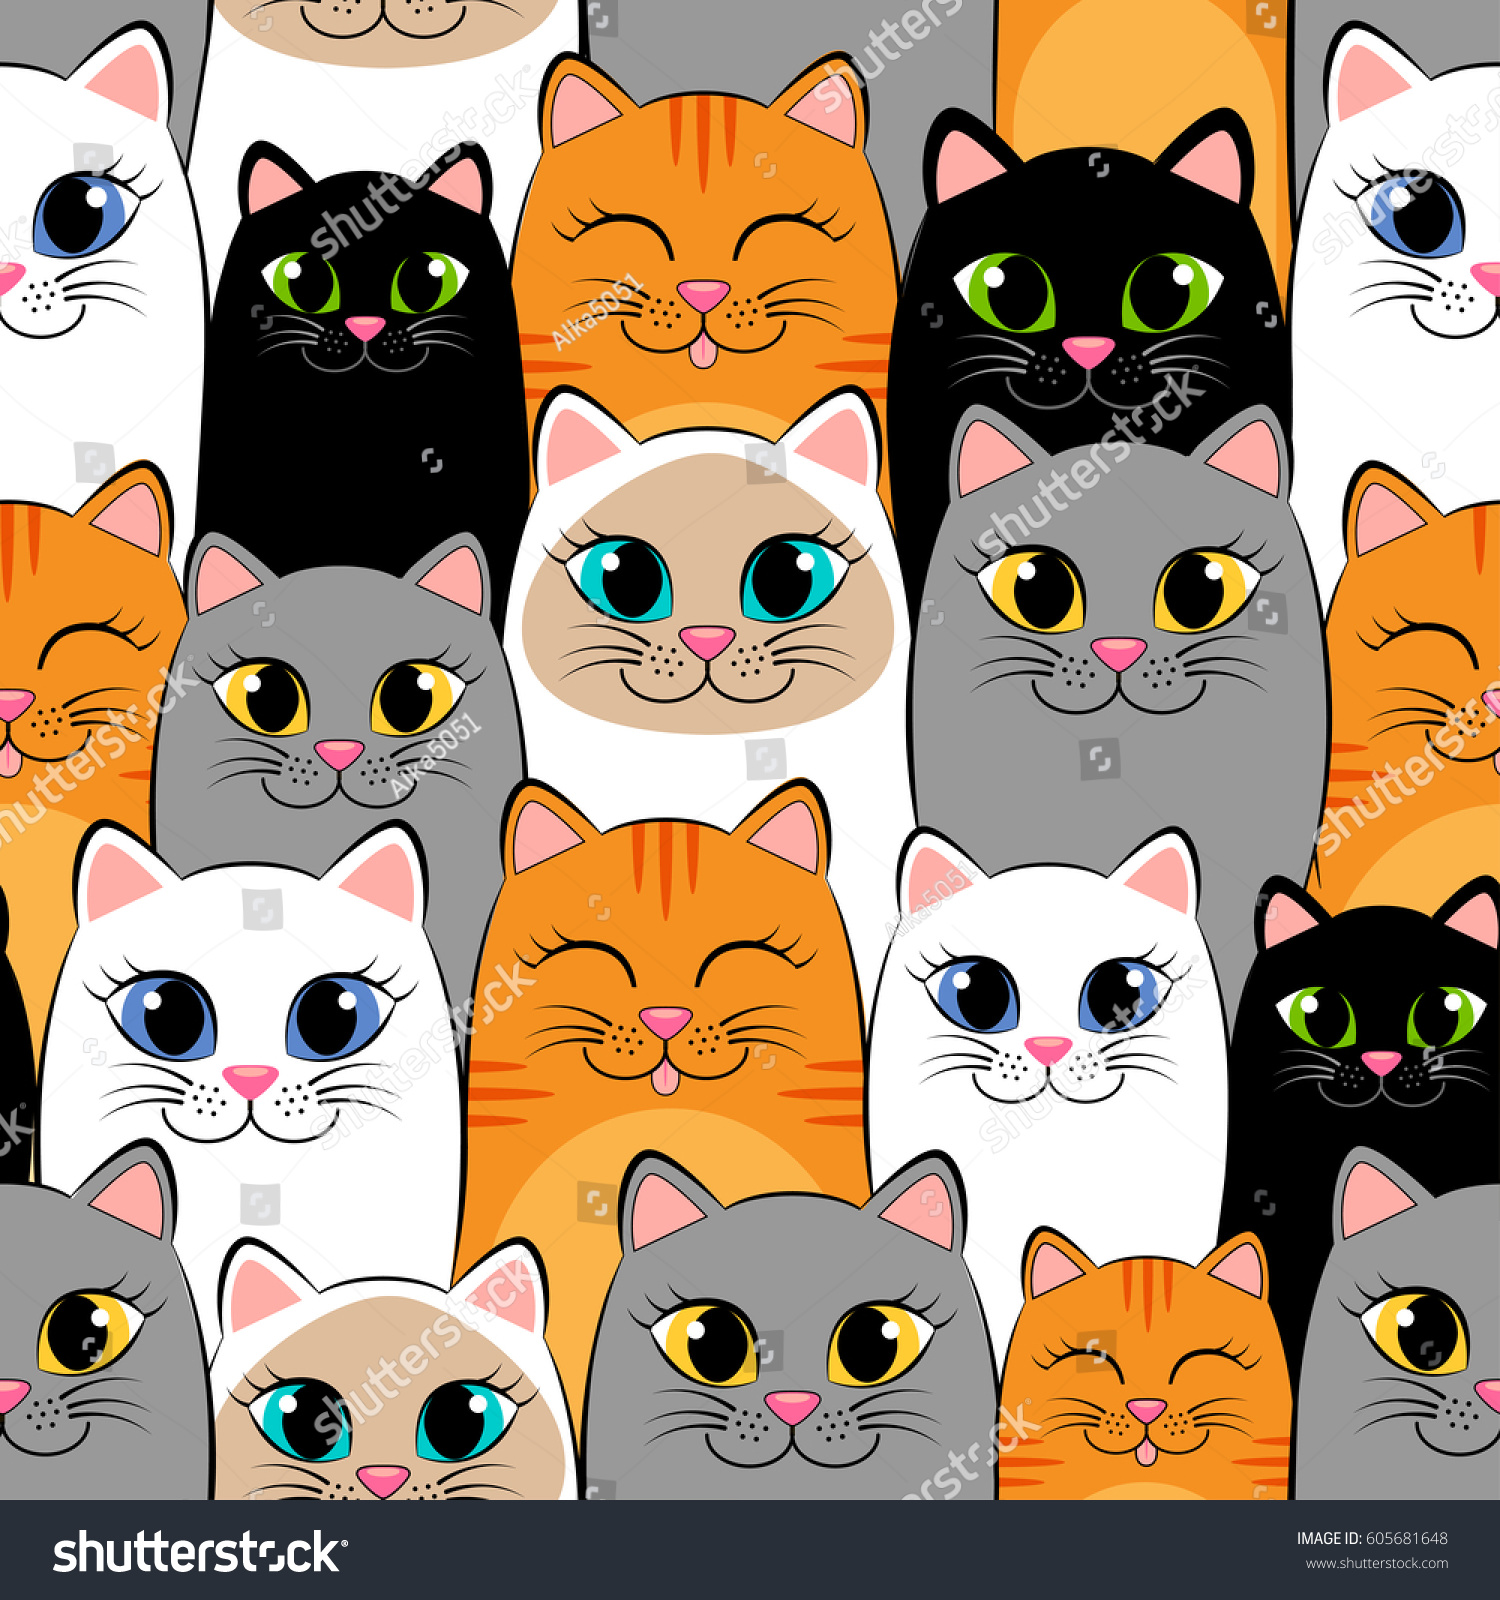 Cats Background | www.pixshark.com - Images Galleries With